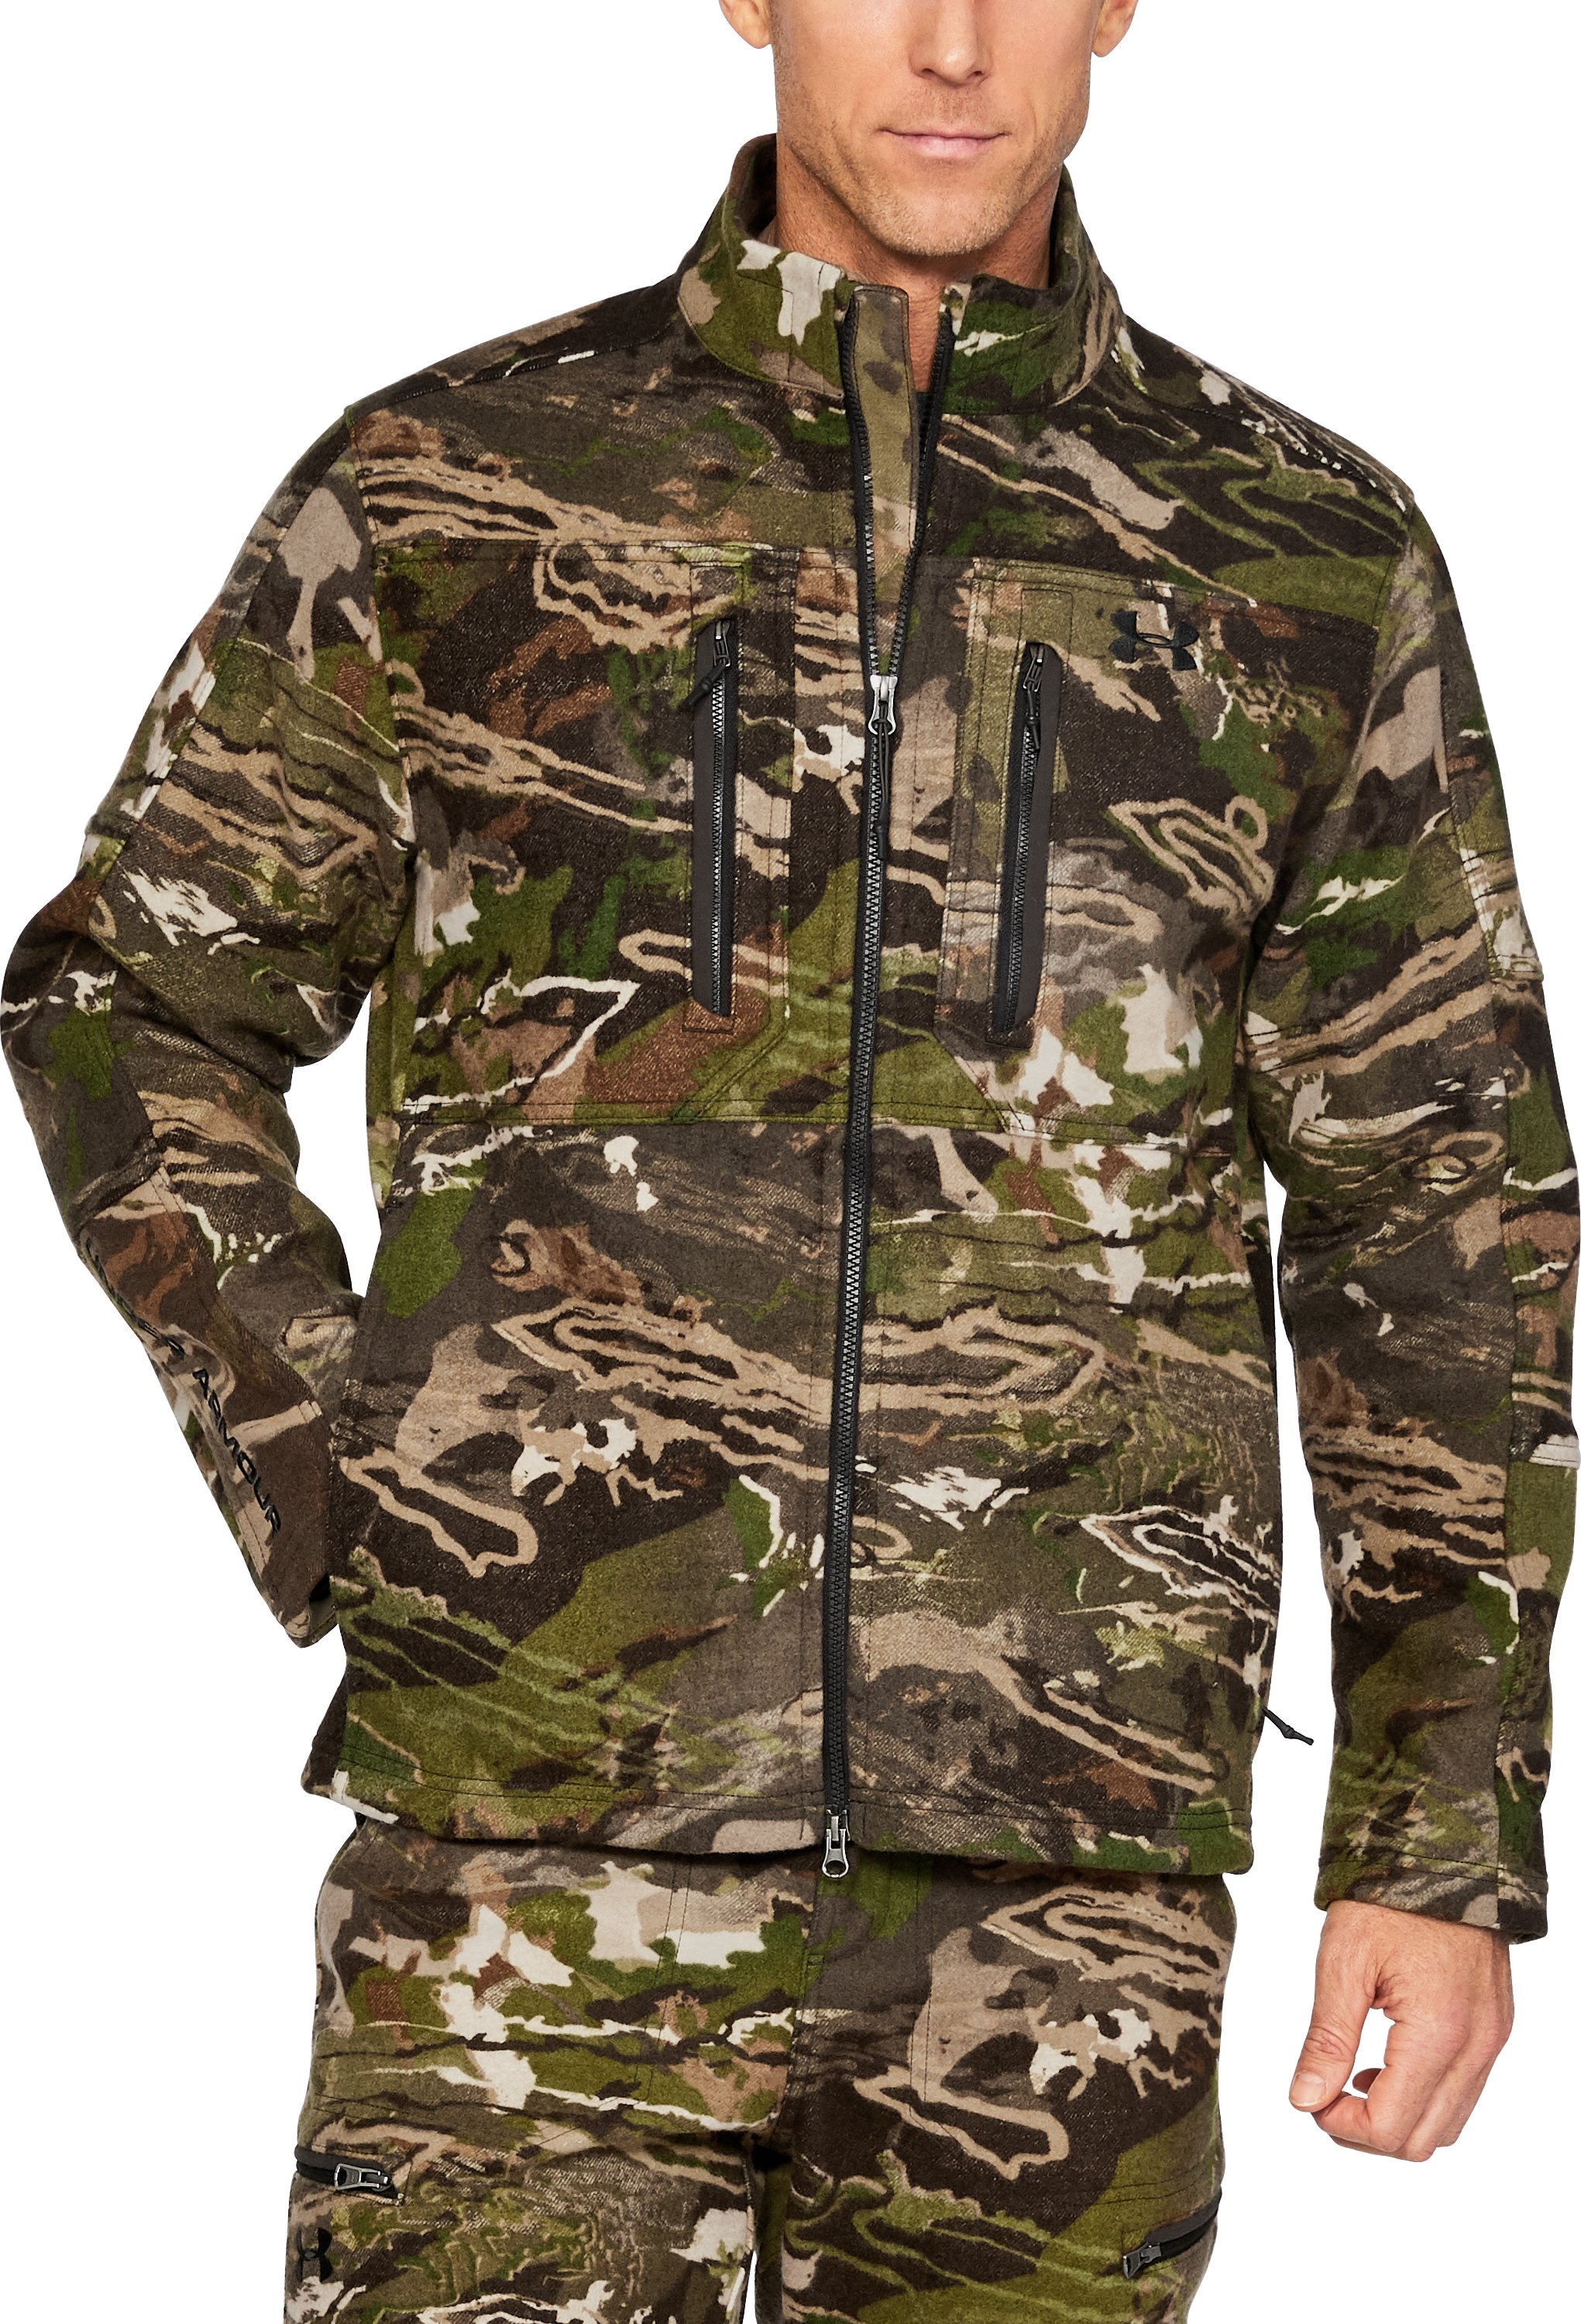 Men's UA Stealth Reaper Mid Season Wool Jacket, RIDGE REAPER® FOREST